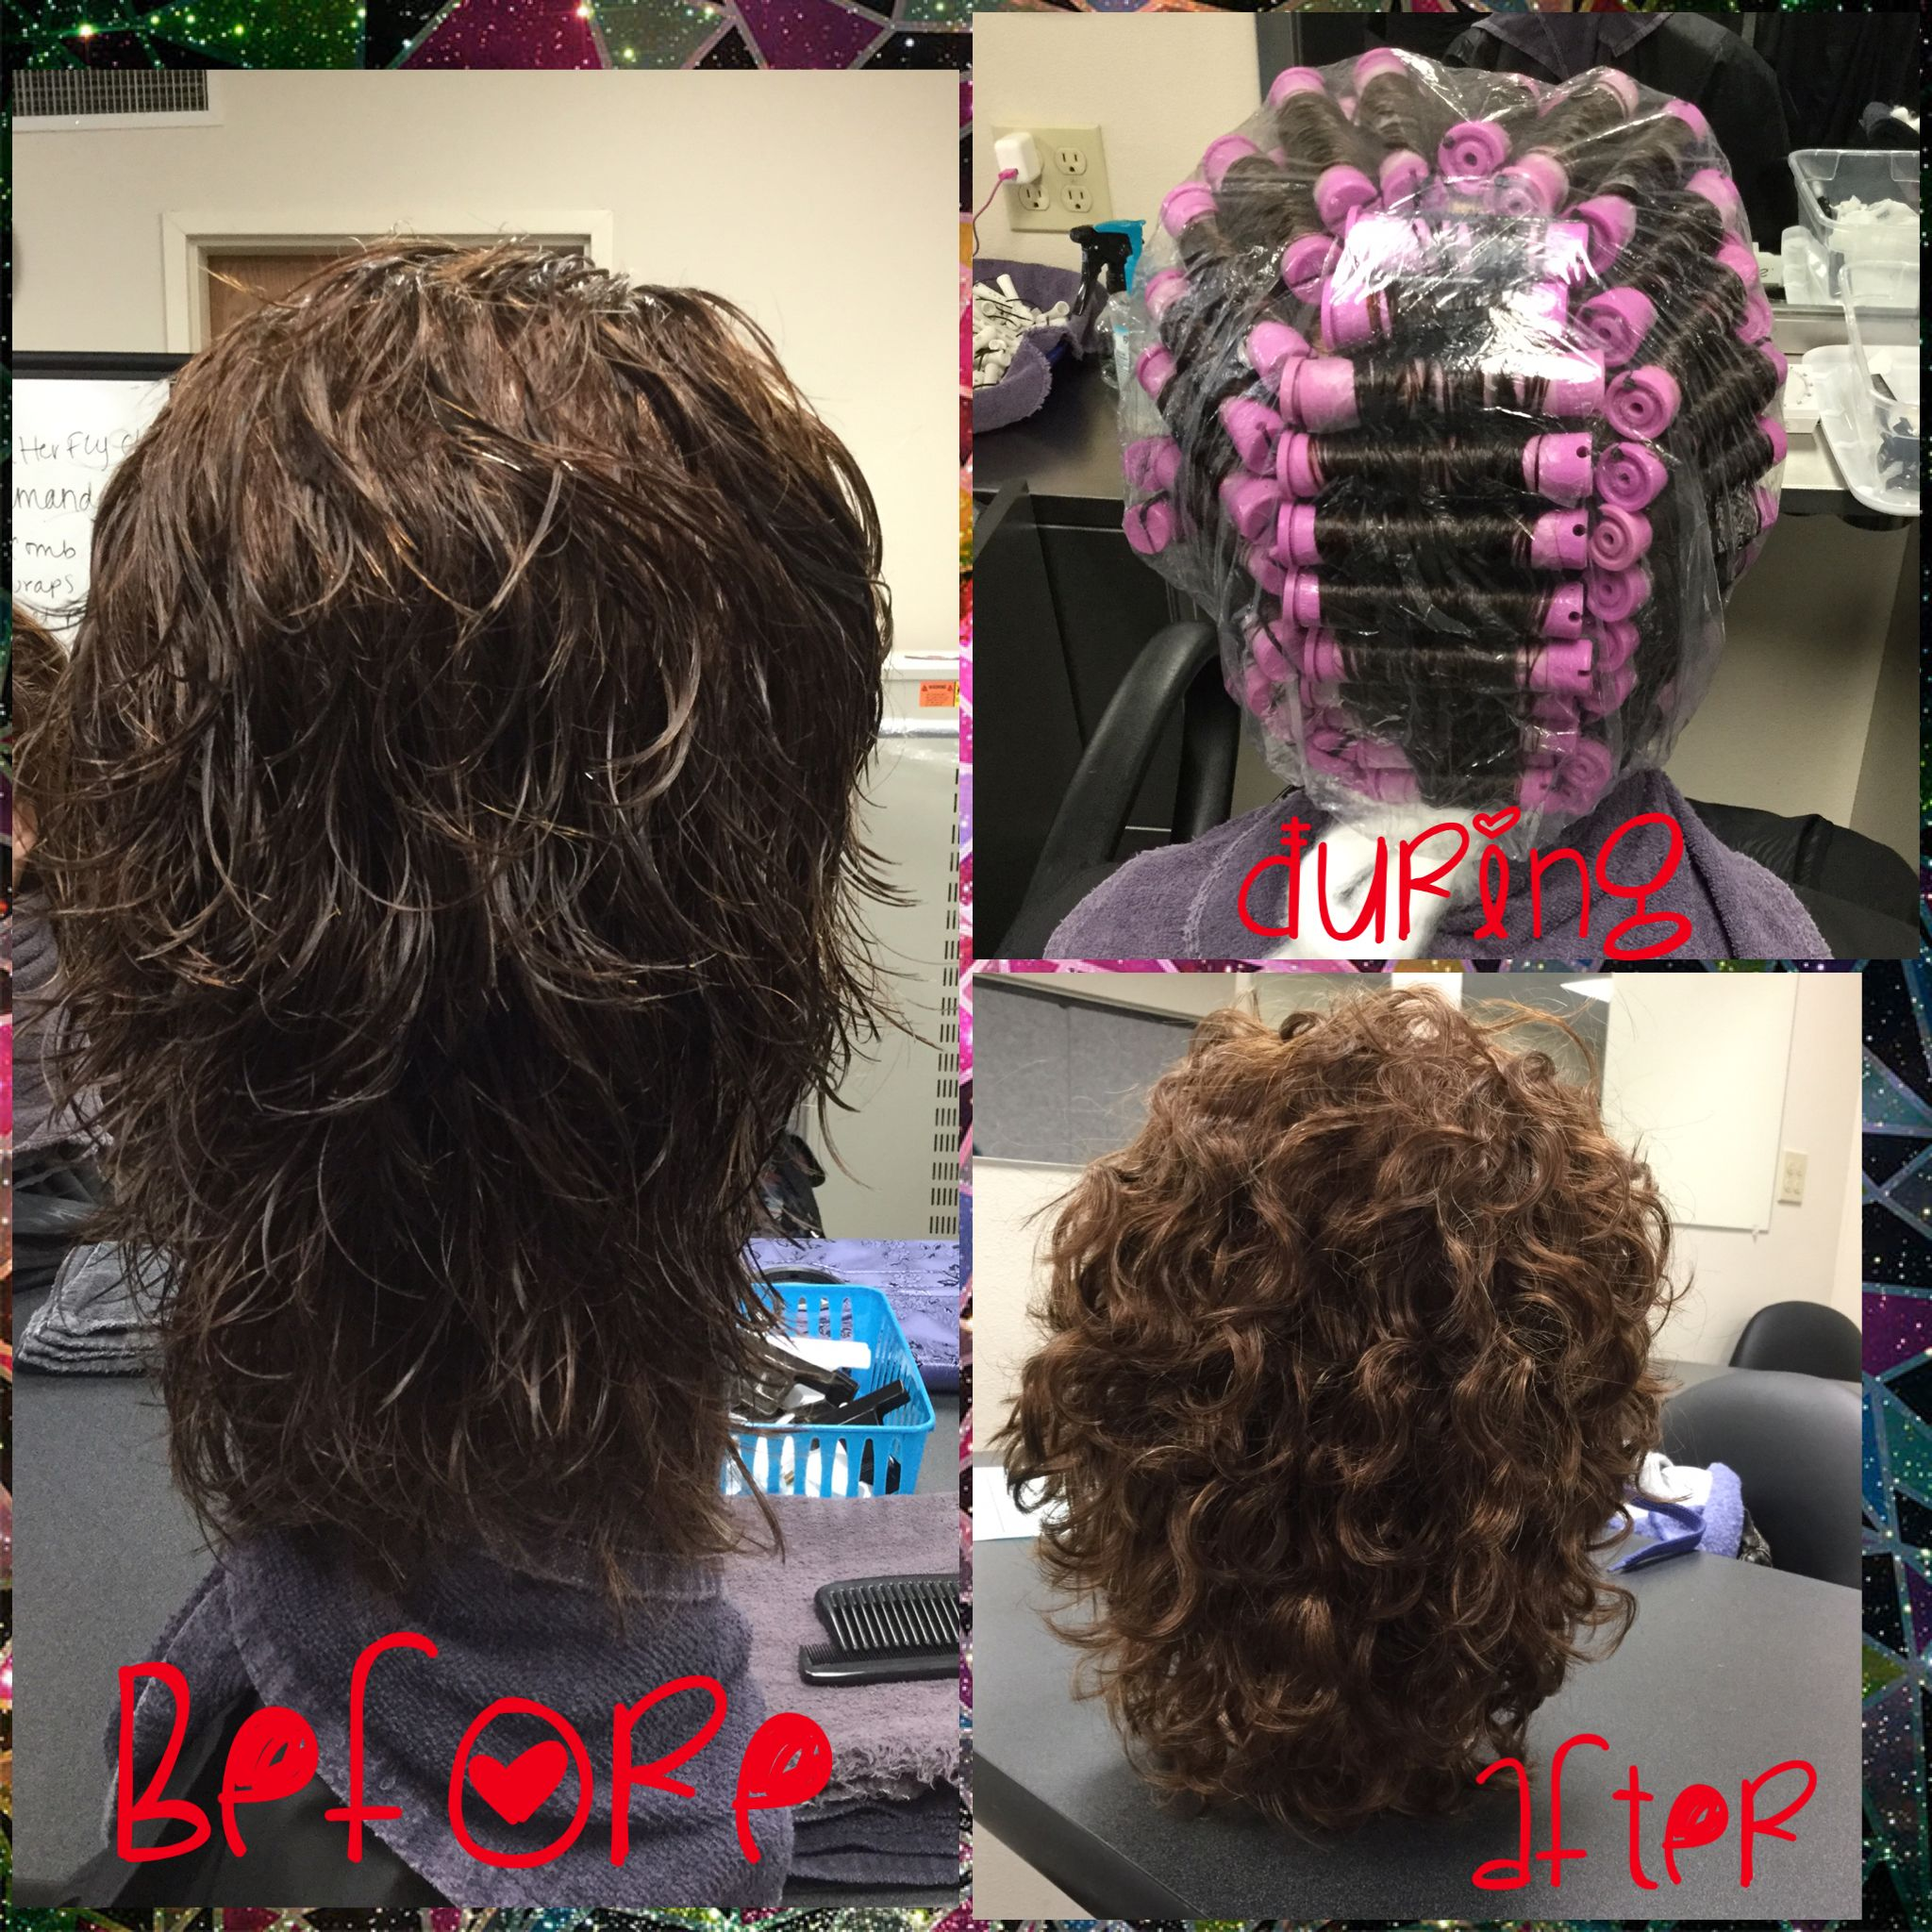 Straight perm solution - This Service Consisted Of A Permanent Wave Using Classic Body Perm Solution